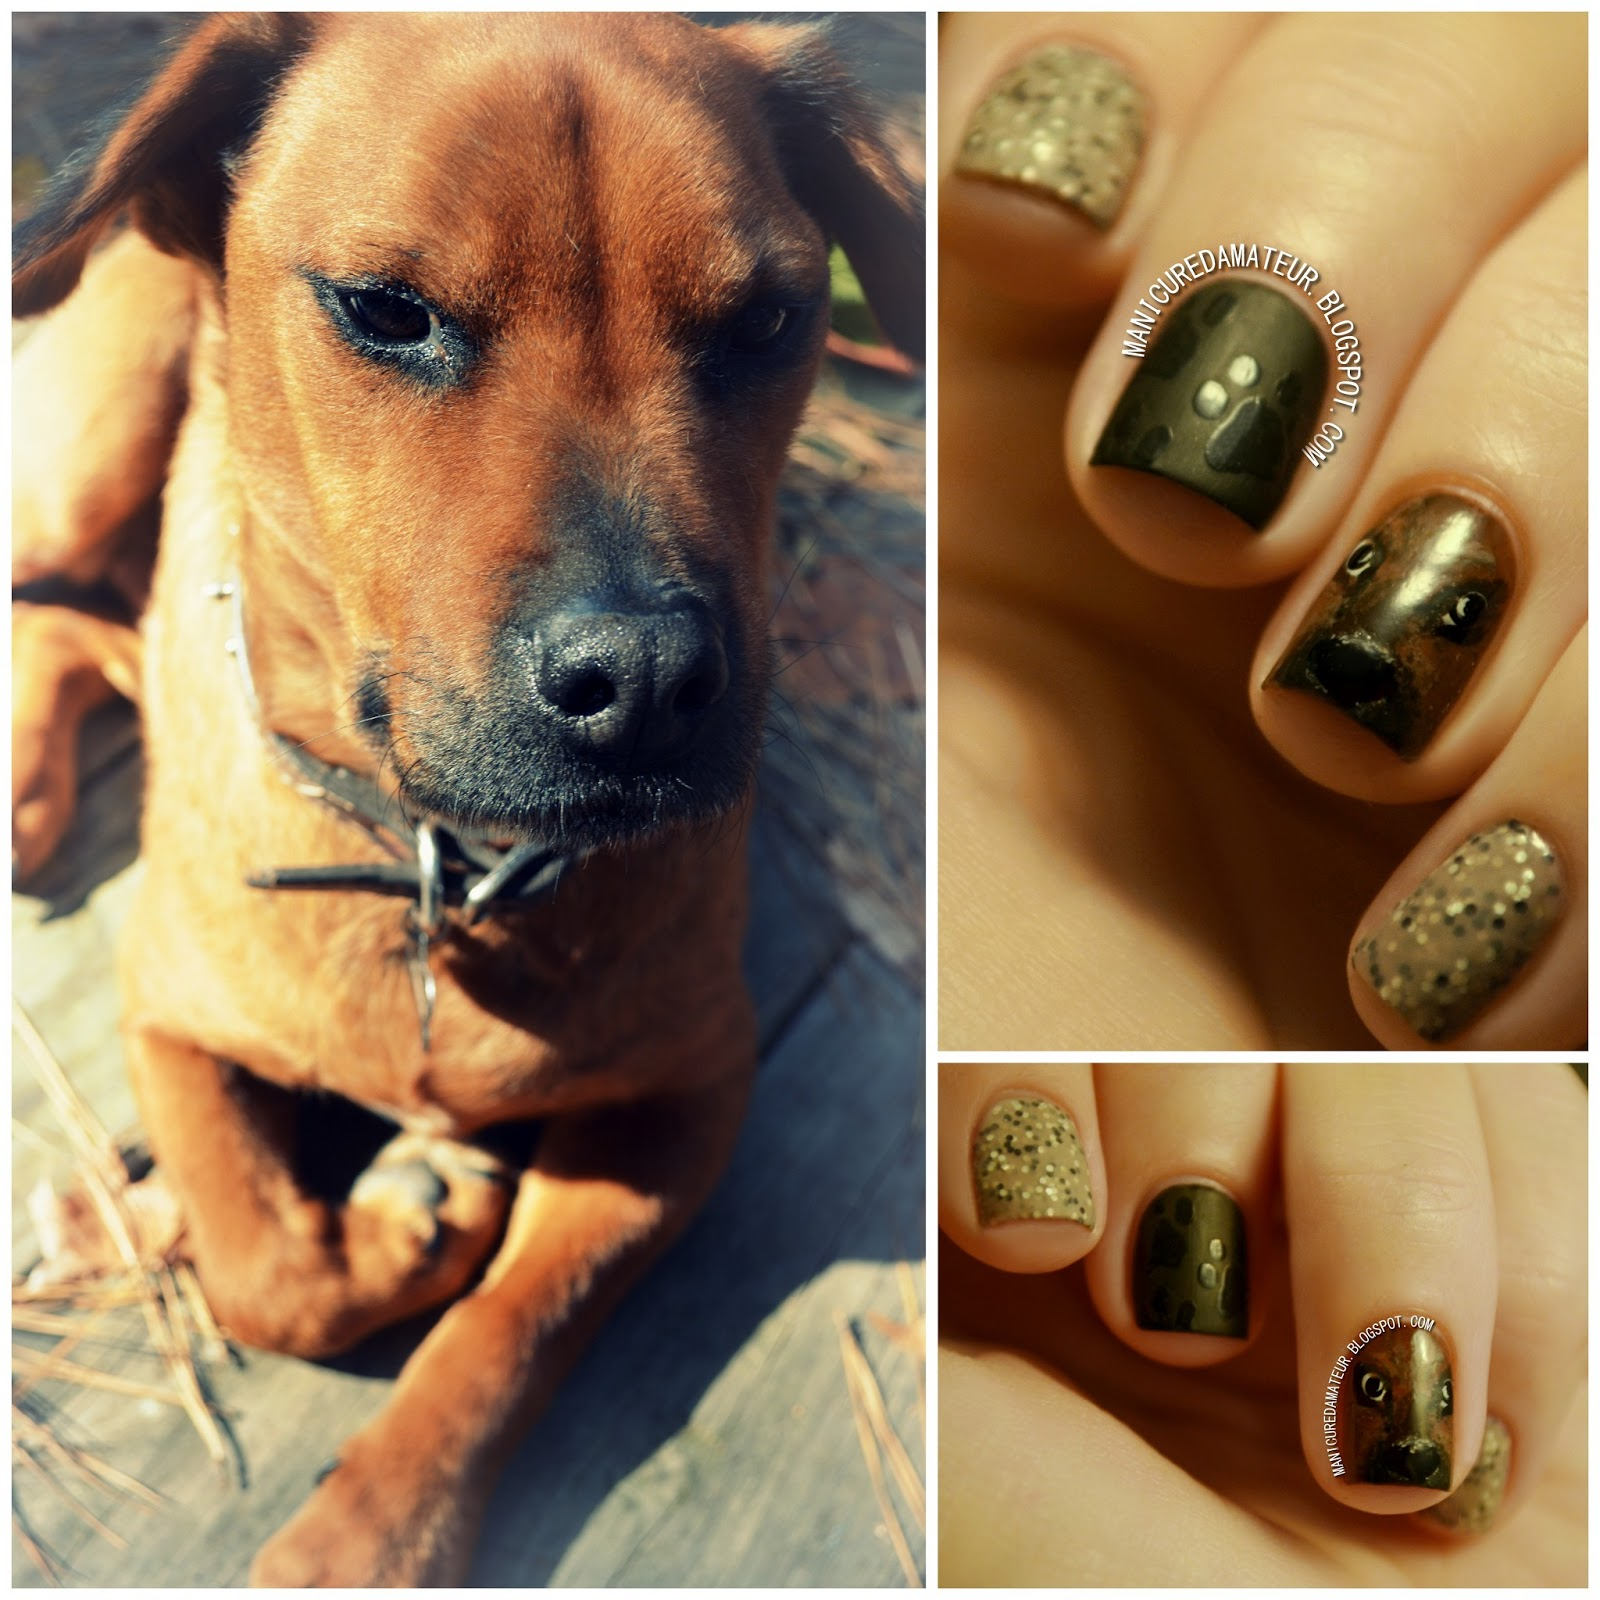 The Manicured Amateur: Free-Hand Dog and Paw Print Nail Art